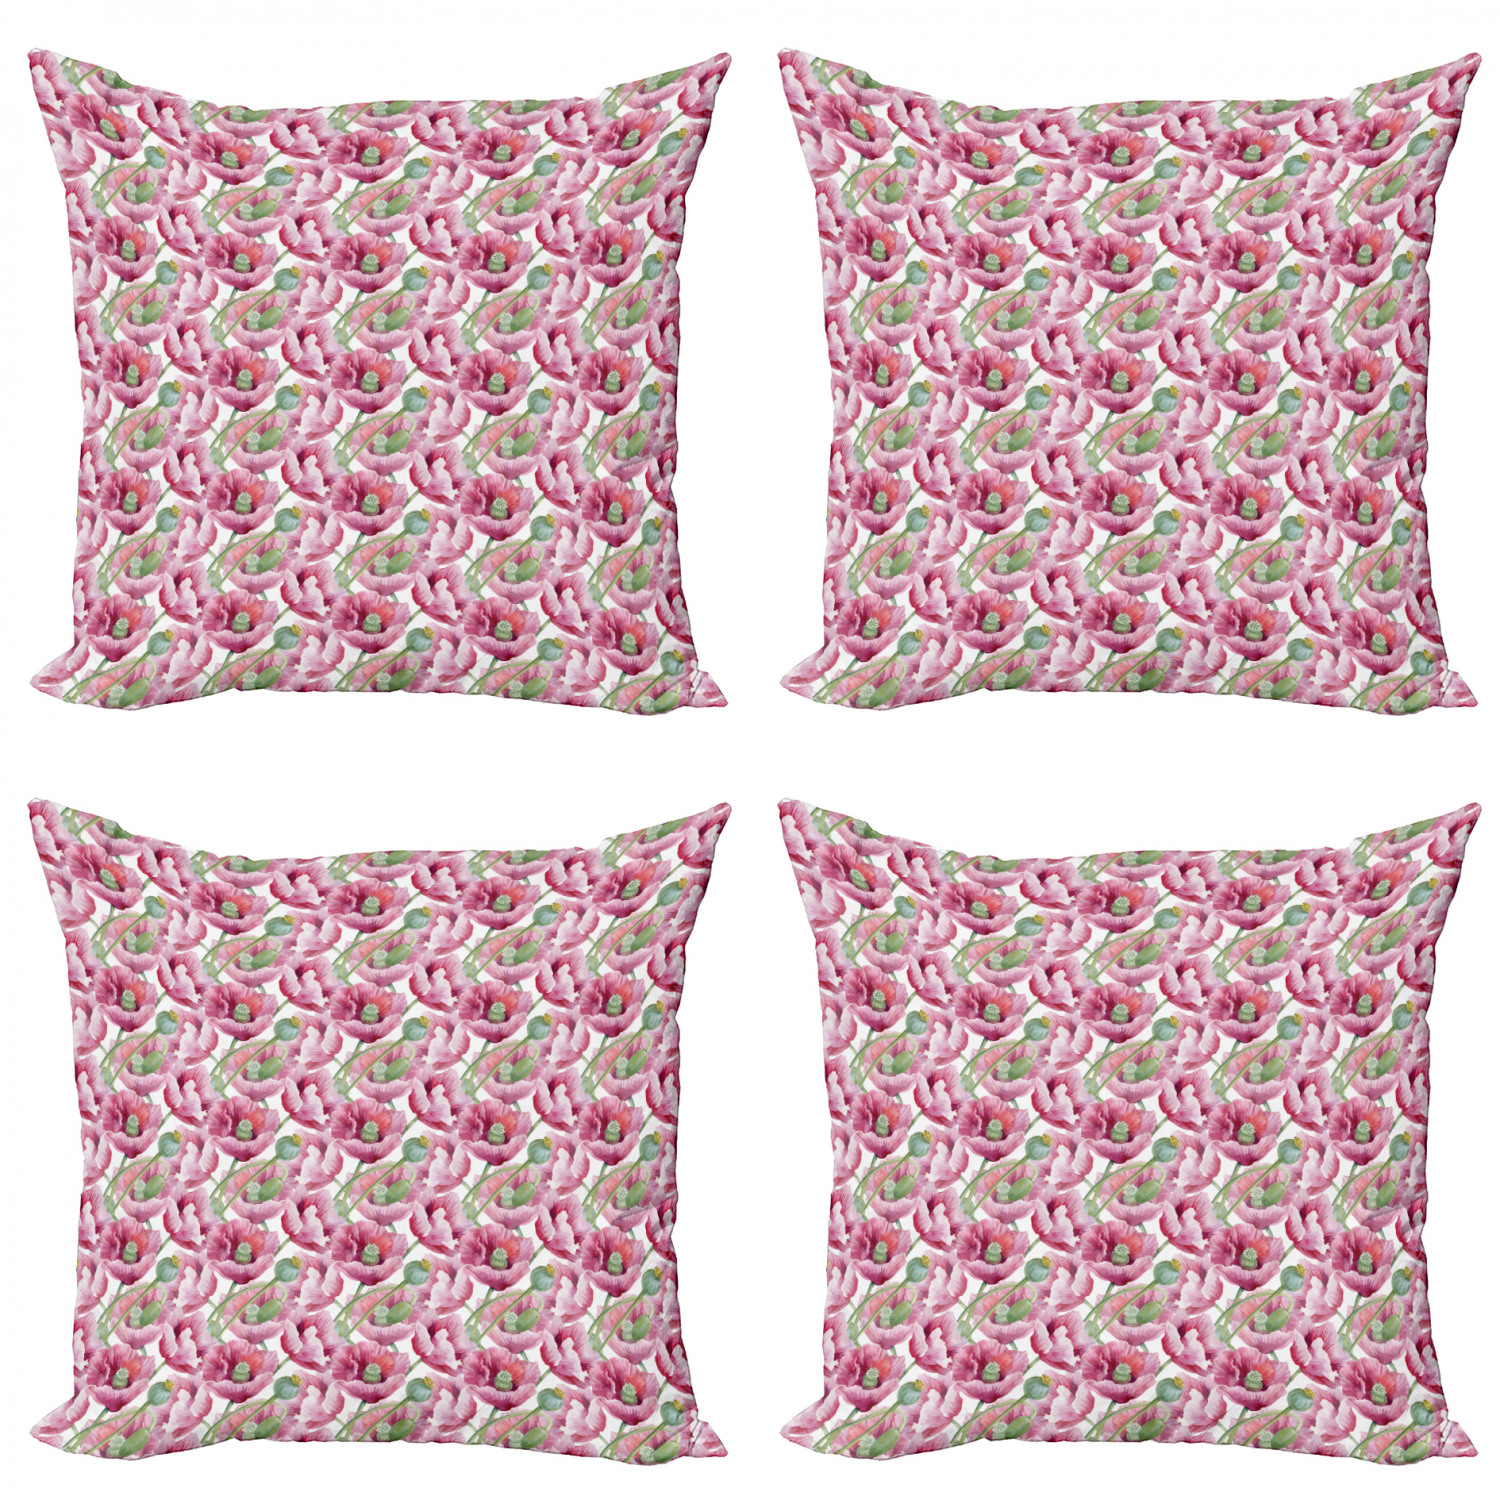 Ambesonne-Floral-Drawings-Cushion-Cover-Set-of-4-for-Couch-and-Bed-in-4-Sizes thumbnail 19